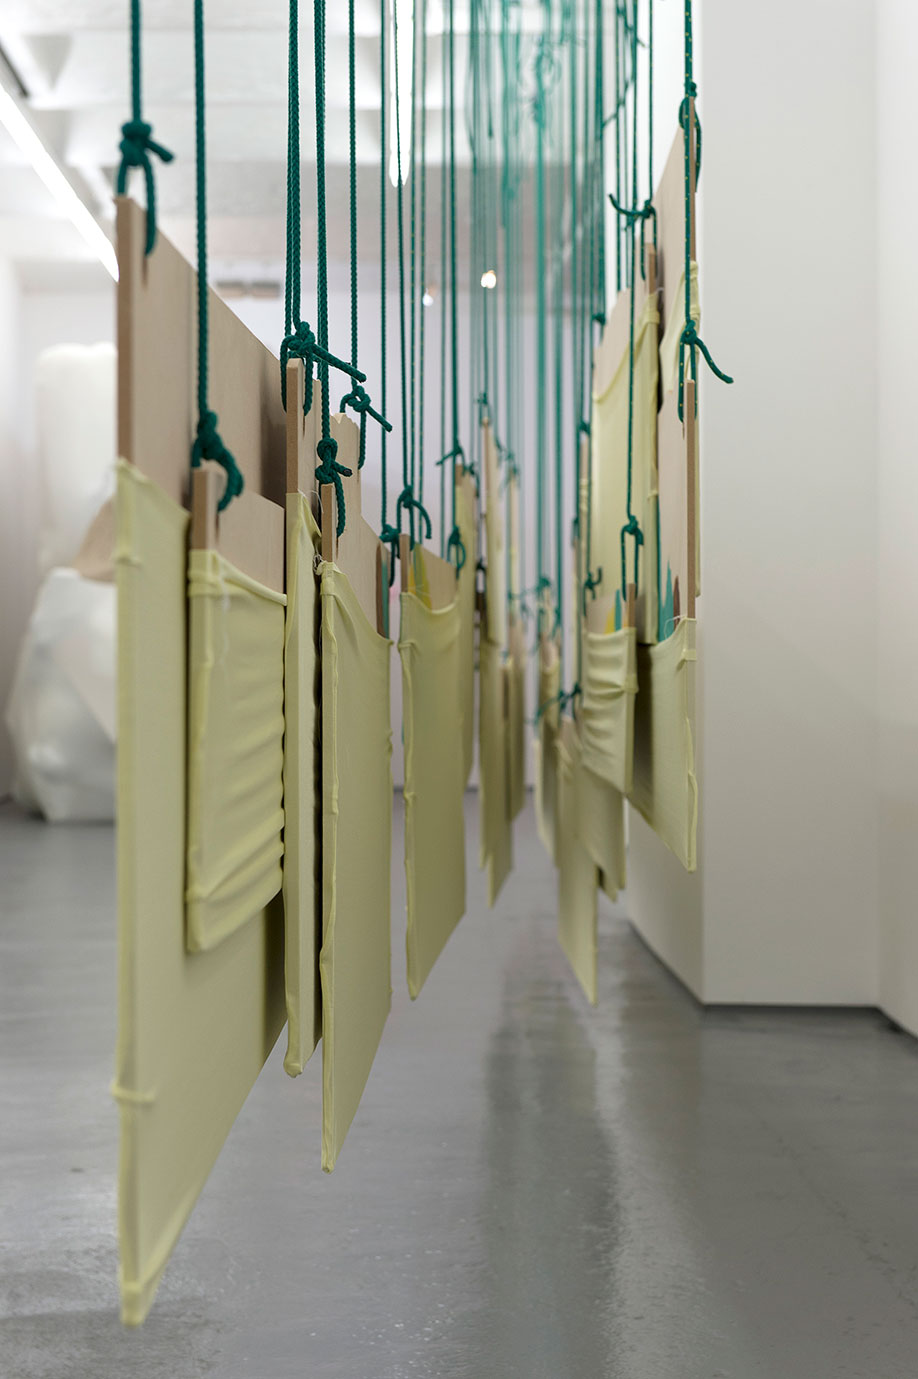 <b>Title:&nbsp;</b>Reconfiguring Landscape (Double Hanging Piece)<br /><b>Year:&nbsp;</b>2015<br /><b>Medium:&nbsp;</b>MDF, lycra, rope, and stainless steel<br /><b>Size:&nbsp;</b>Dimensions variable, 290 x 910 x 28 cm approx.